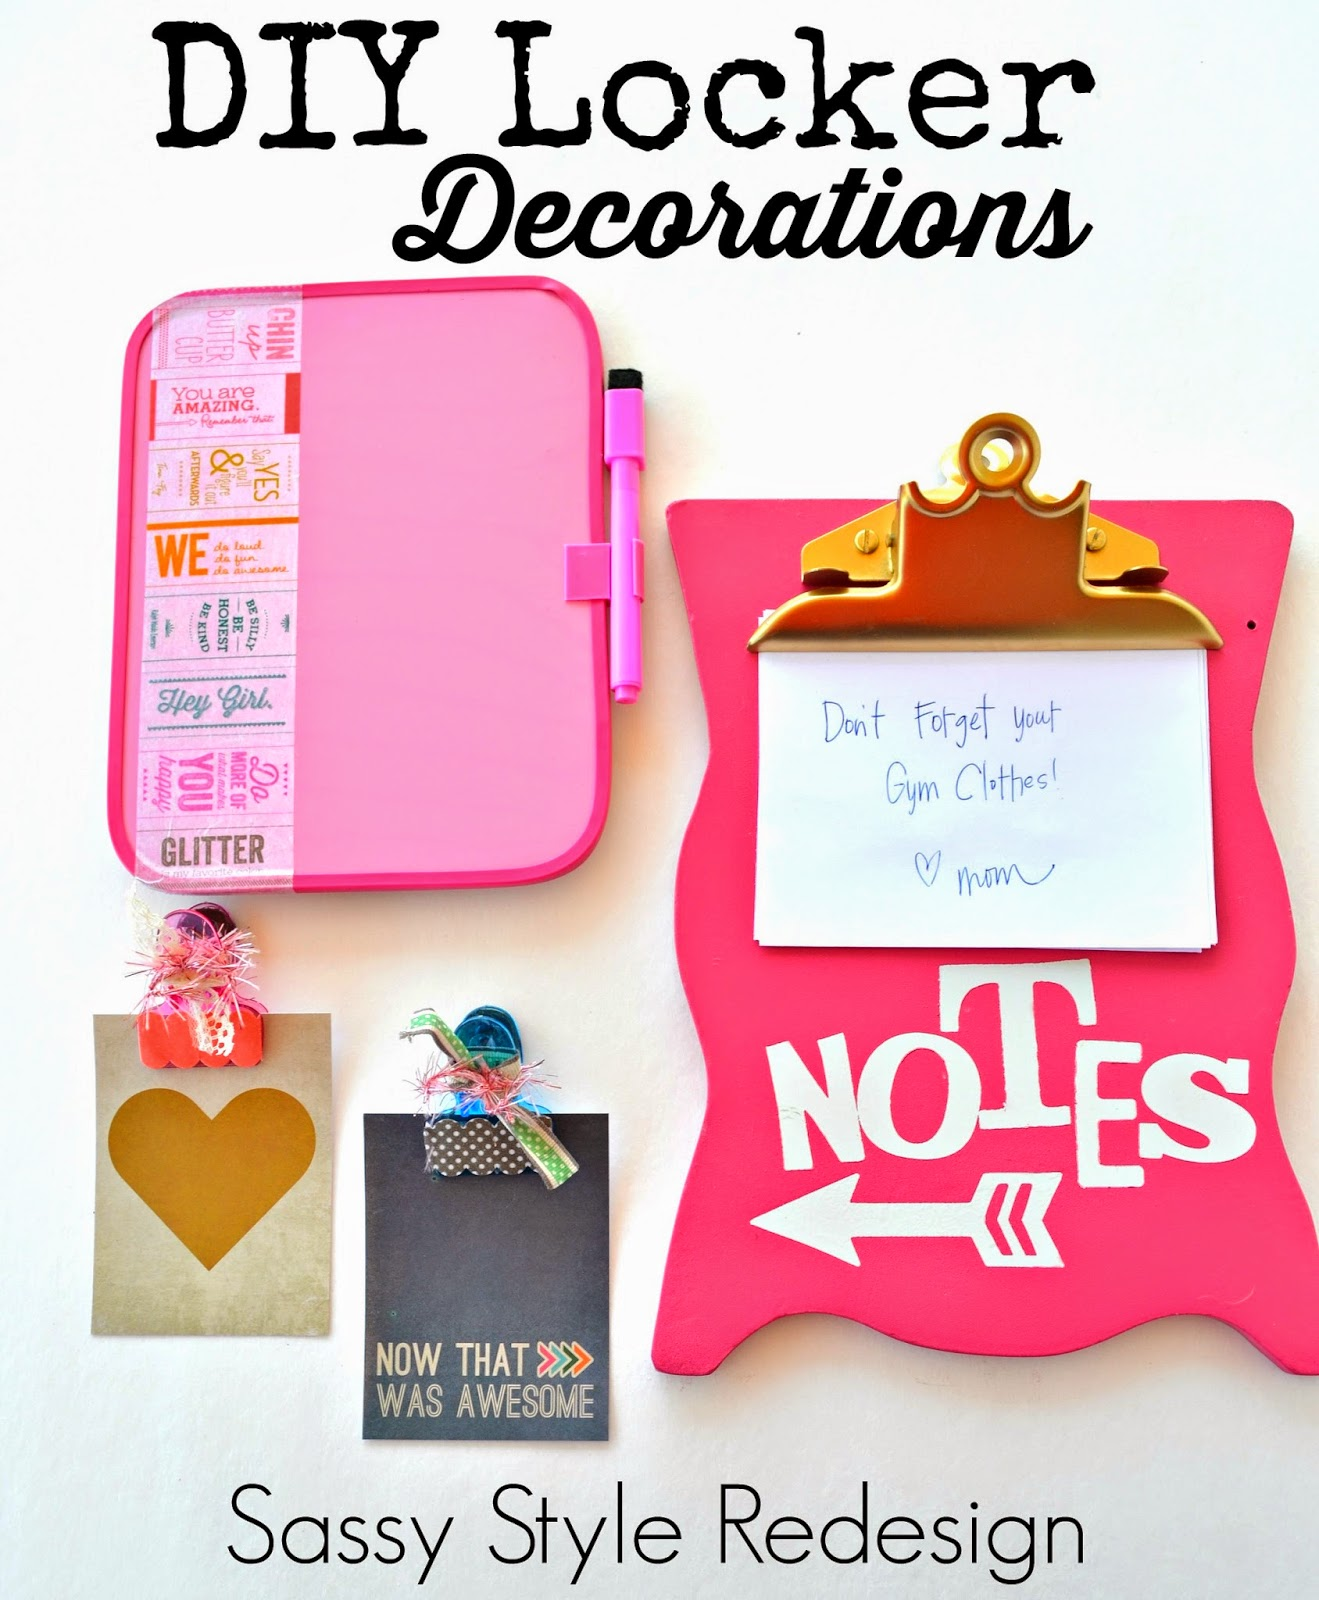 Httpwwwsassystyleredesigncom201407diy   Locker Designs Ideas